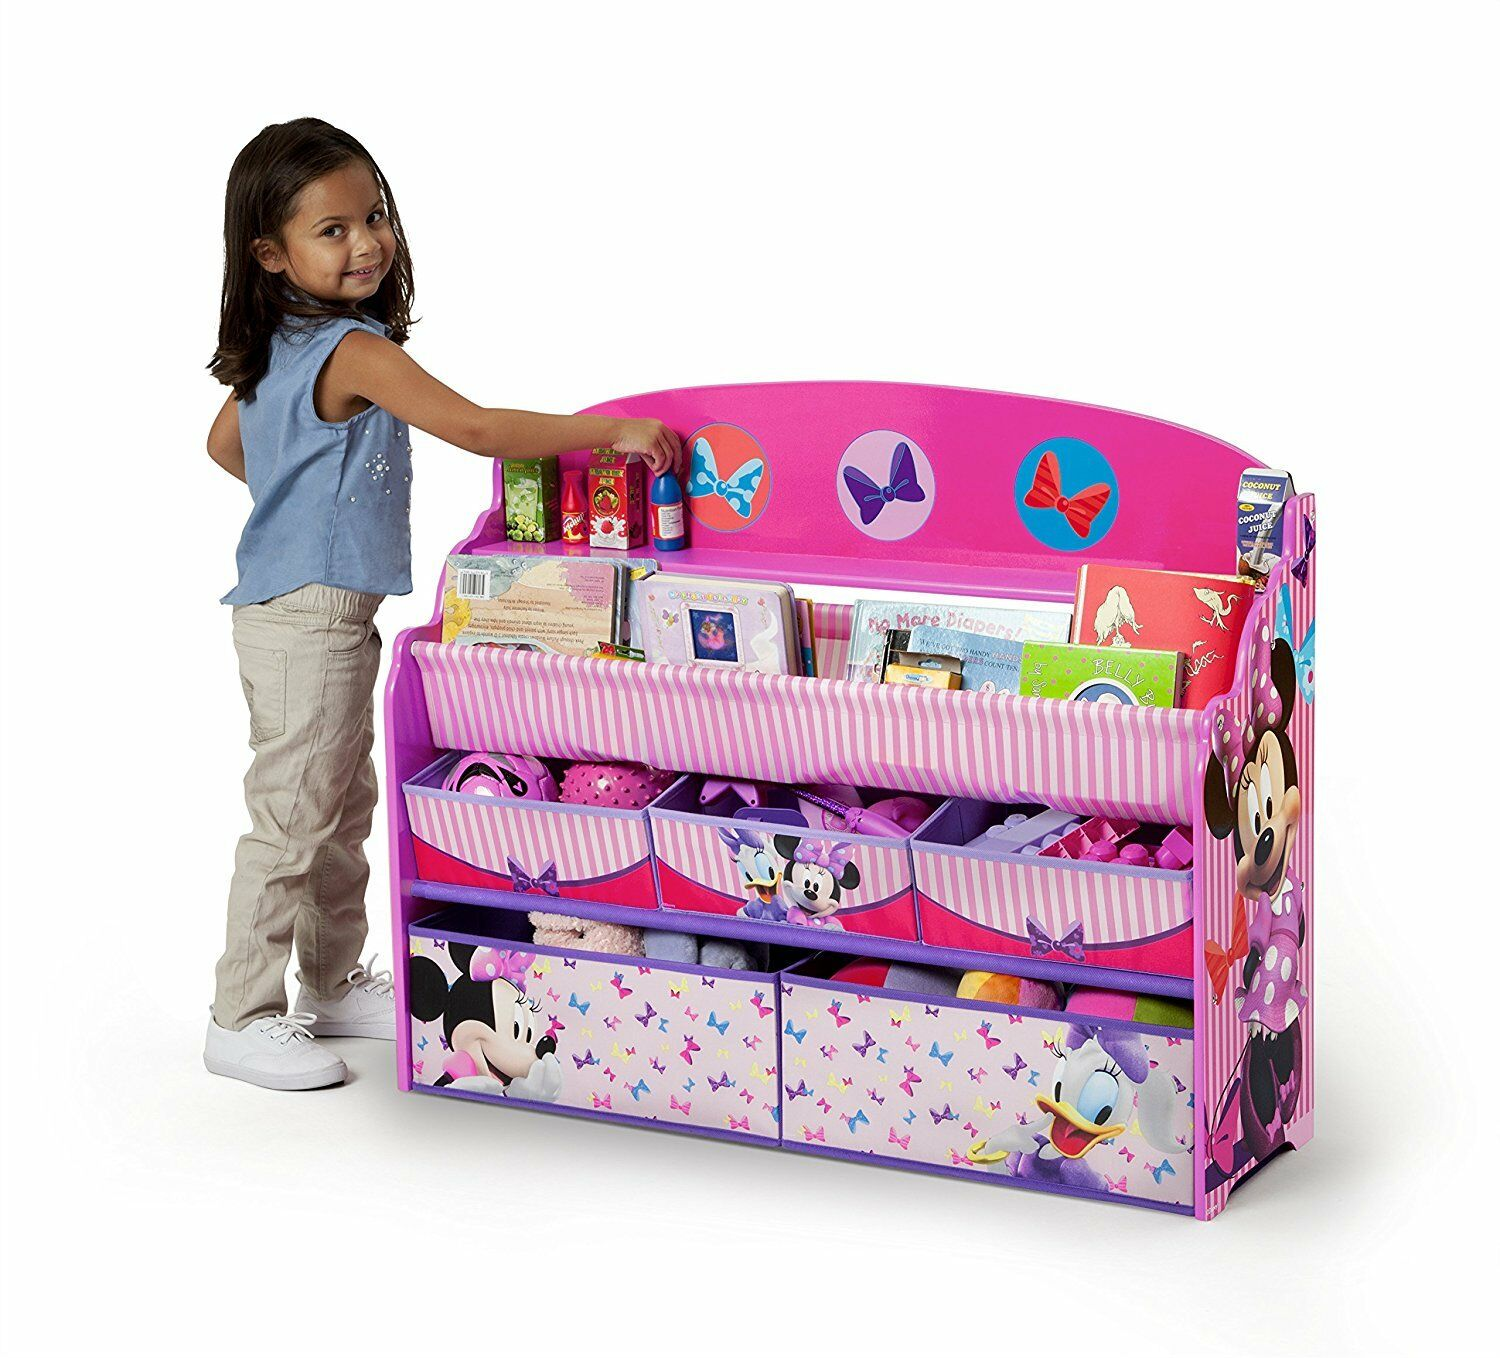 Dolls Butterfly Girls Toy Books Sturdy Wood Organizer Storage